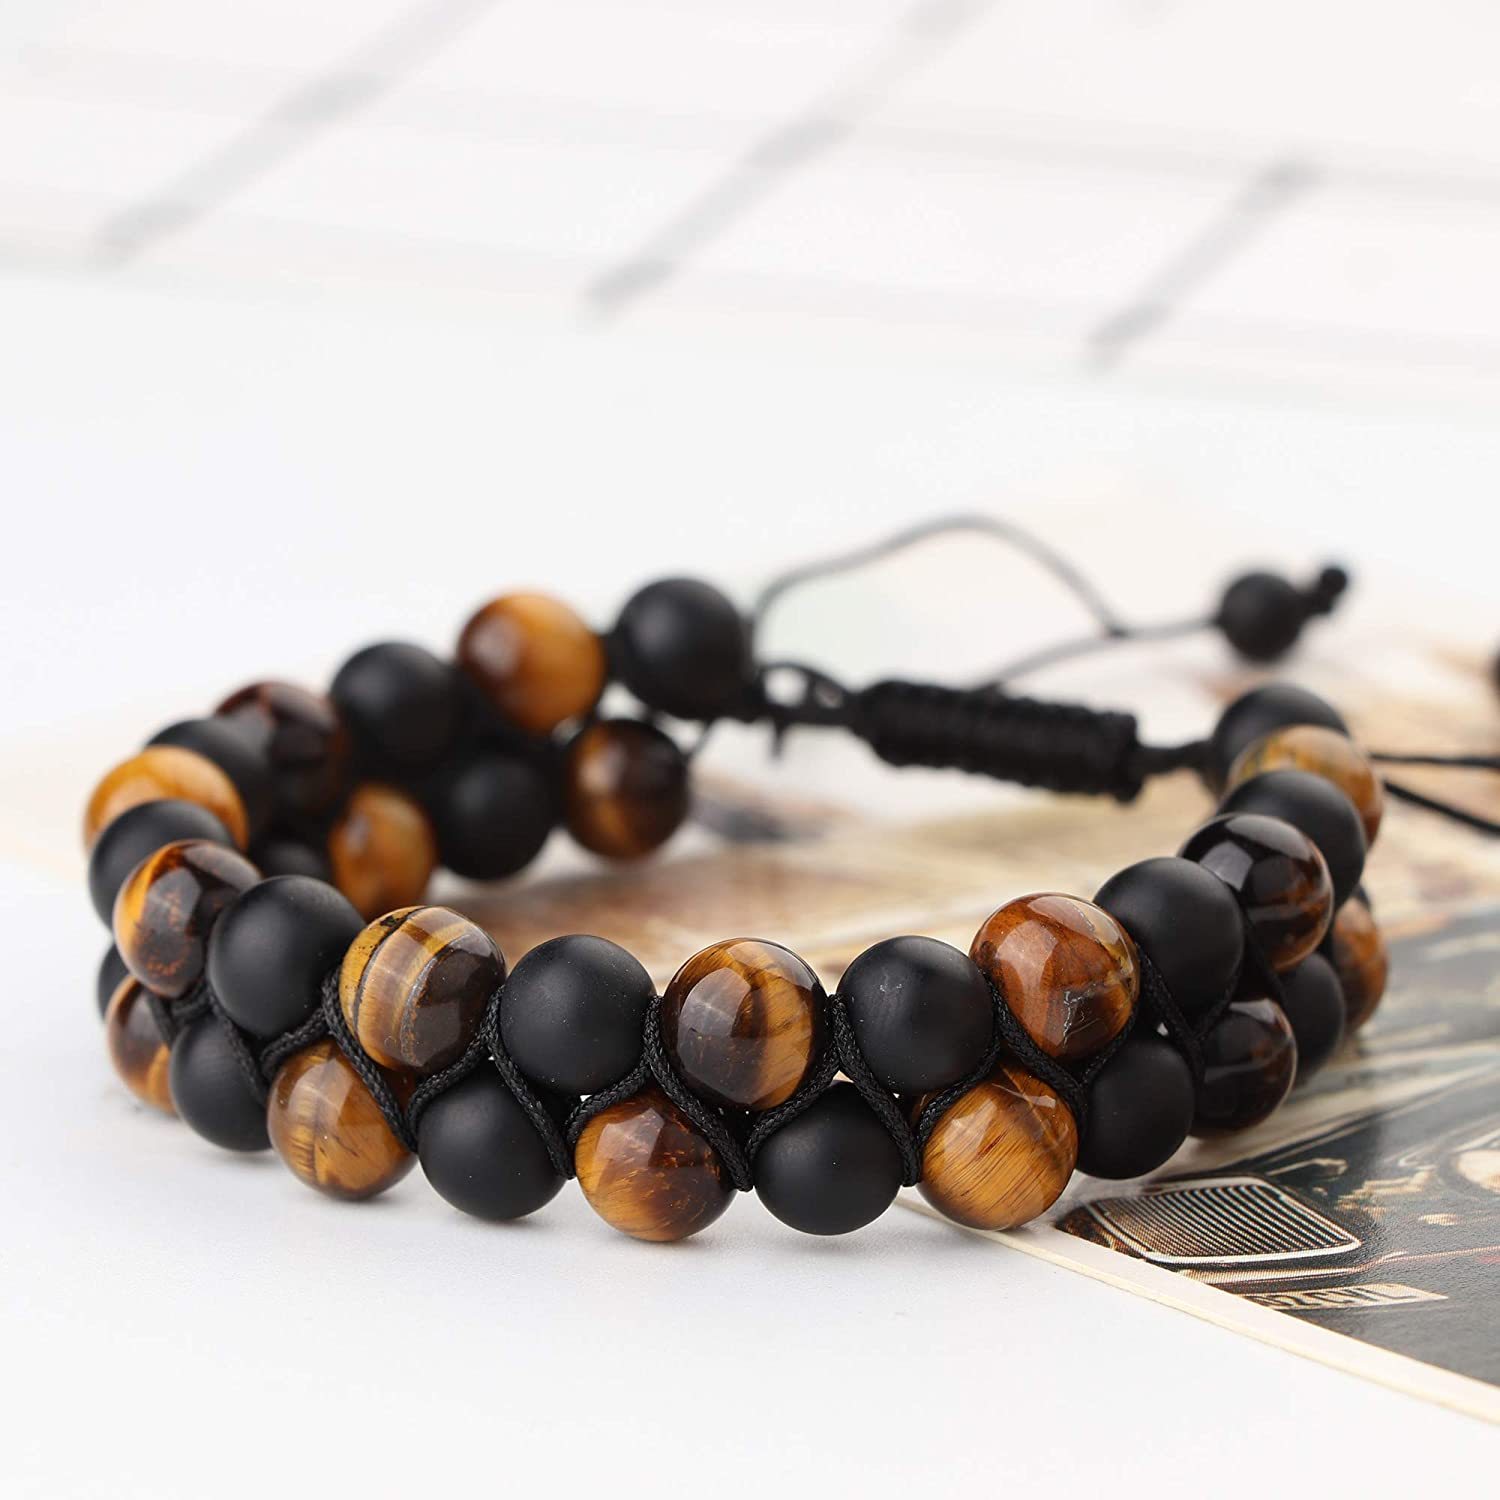 Thunaraz 8mm Men/'s Bracelet Diffuser Bracelet Lava Rock Braided Rope Natural Stone Bracelet Gifts for Men